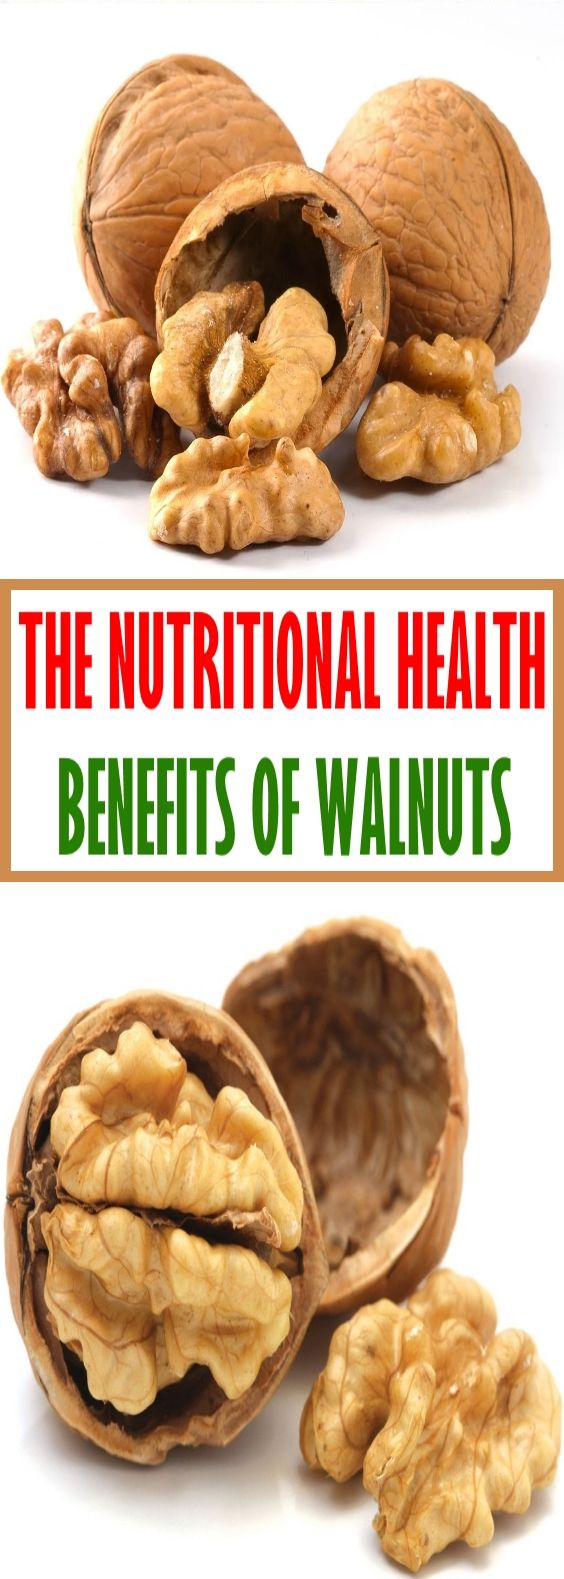 The Nutritional Health Benefits of Walnuts